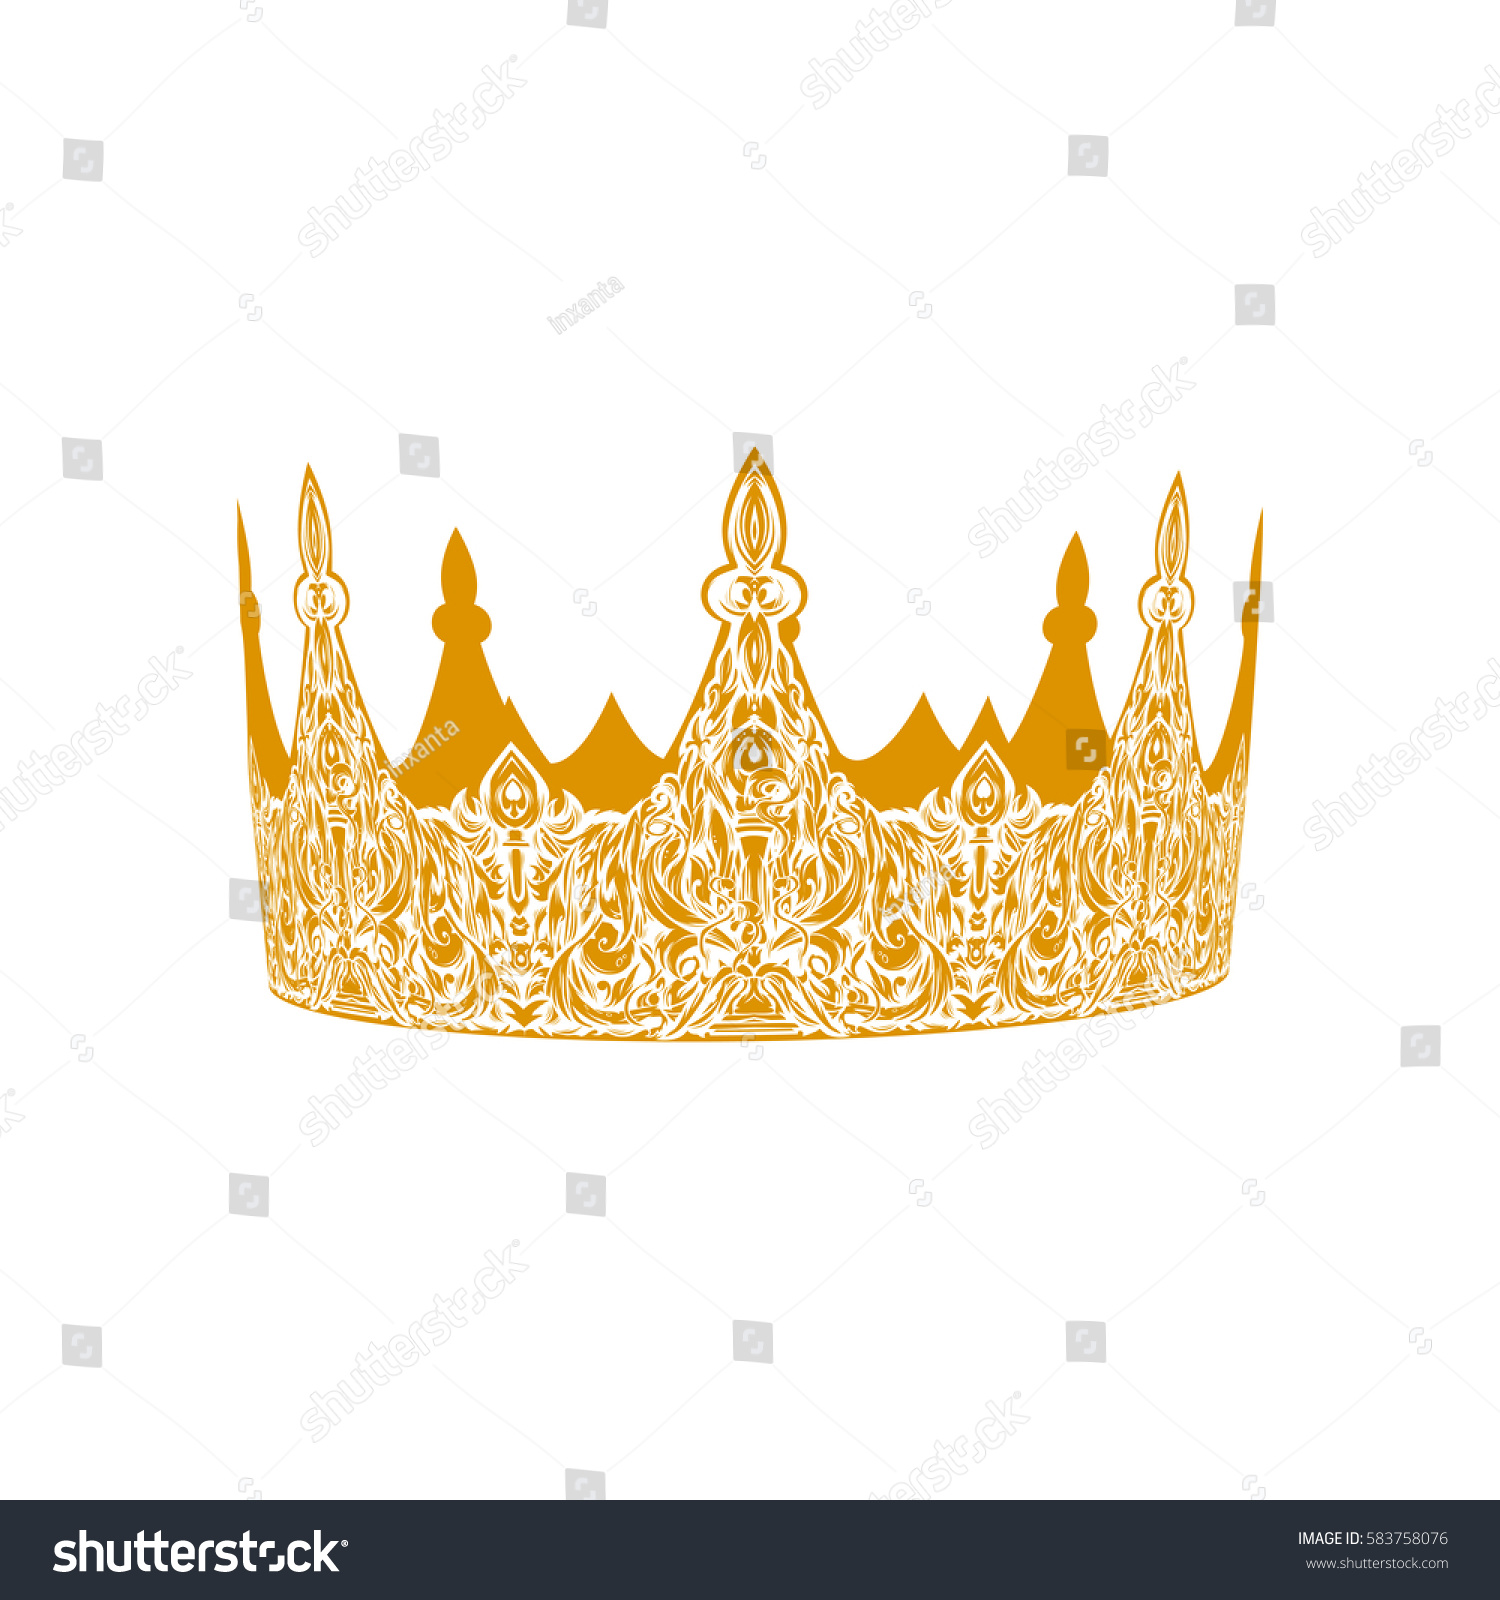 Beautiful Gold Vintage Crown Patterned Old Stock Vector 2018